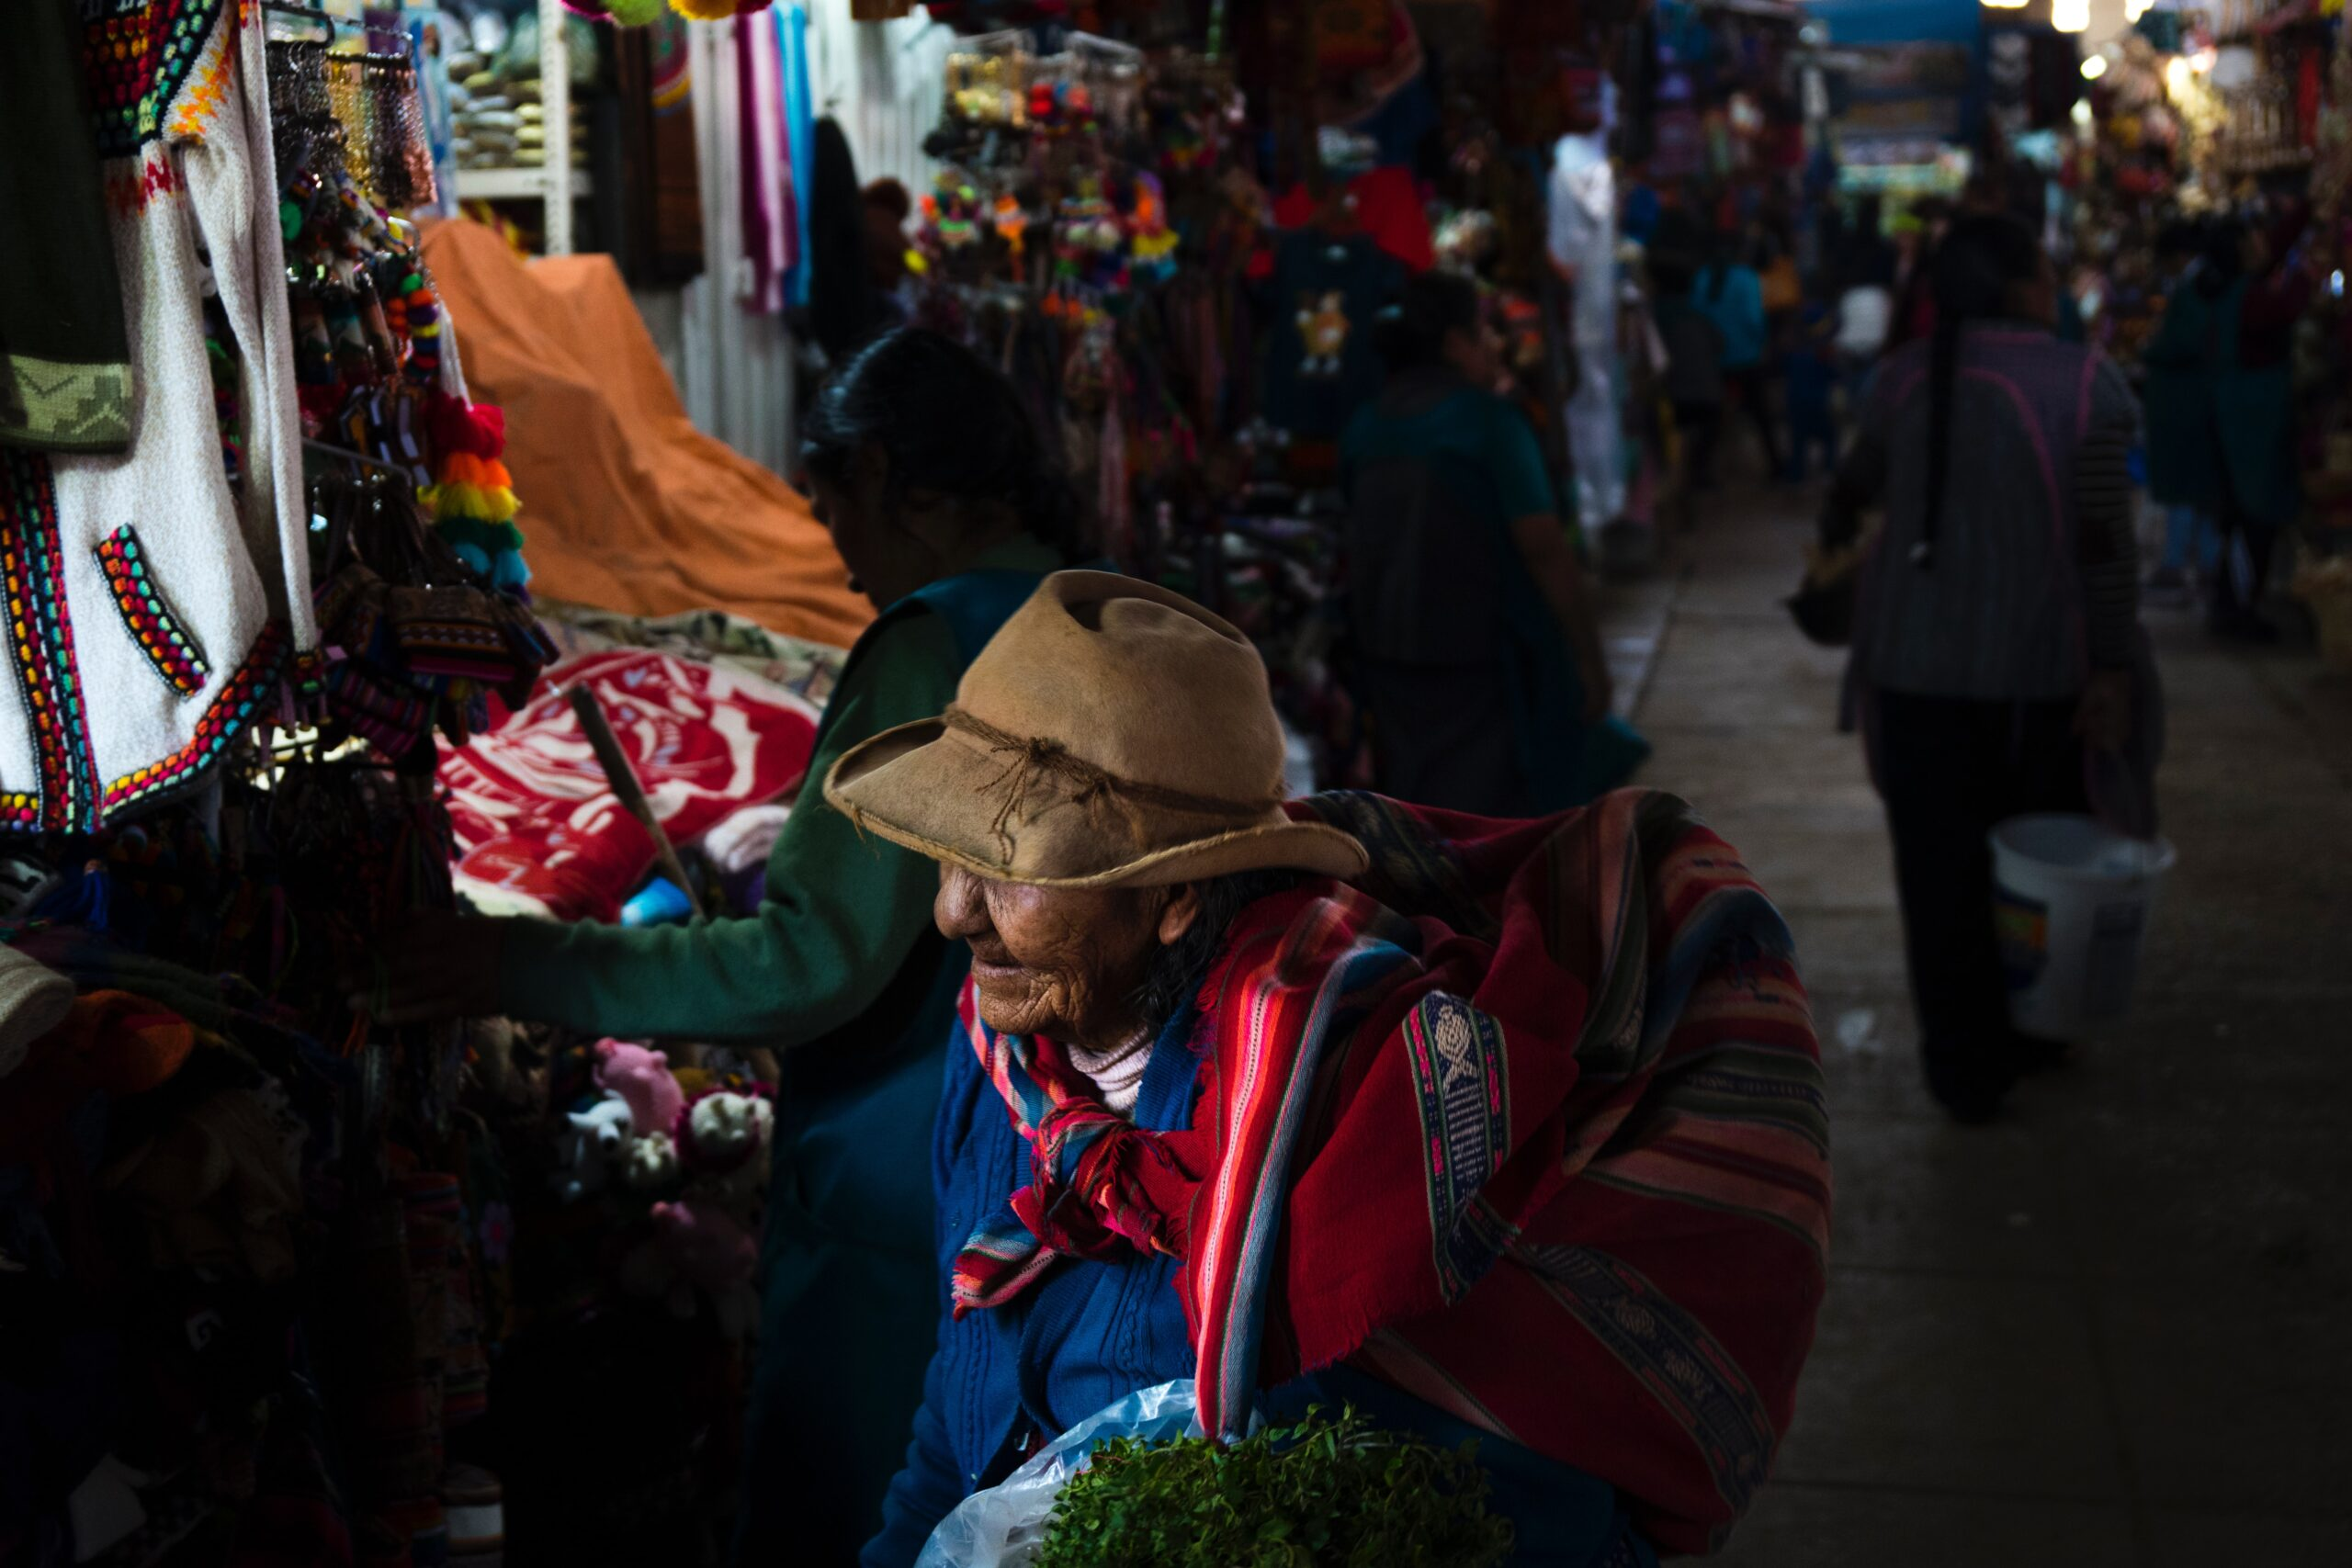 Boca Del Río's Open-Air Market Sustains Tradition And Anchors The Community